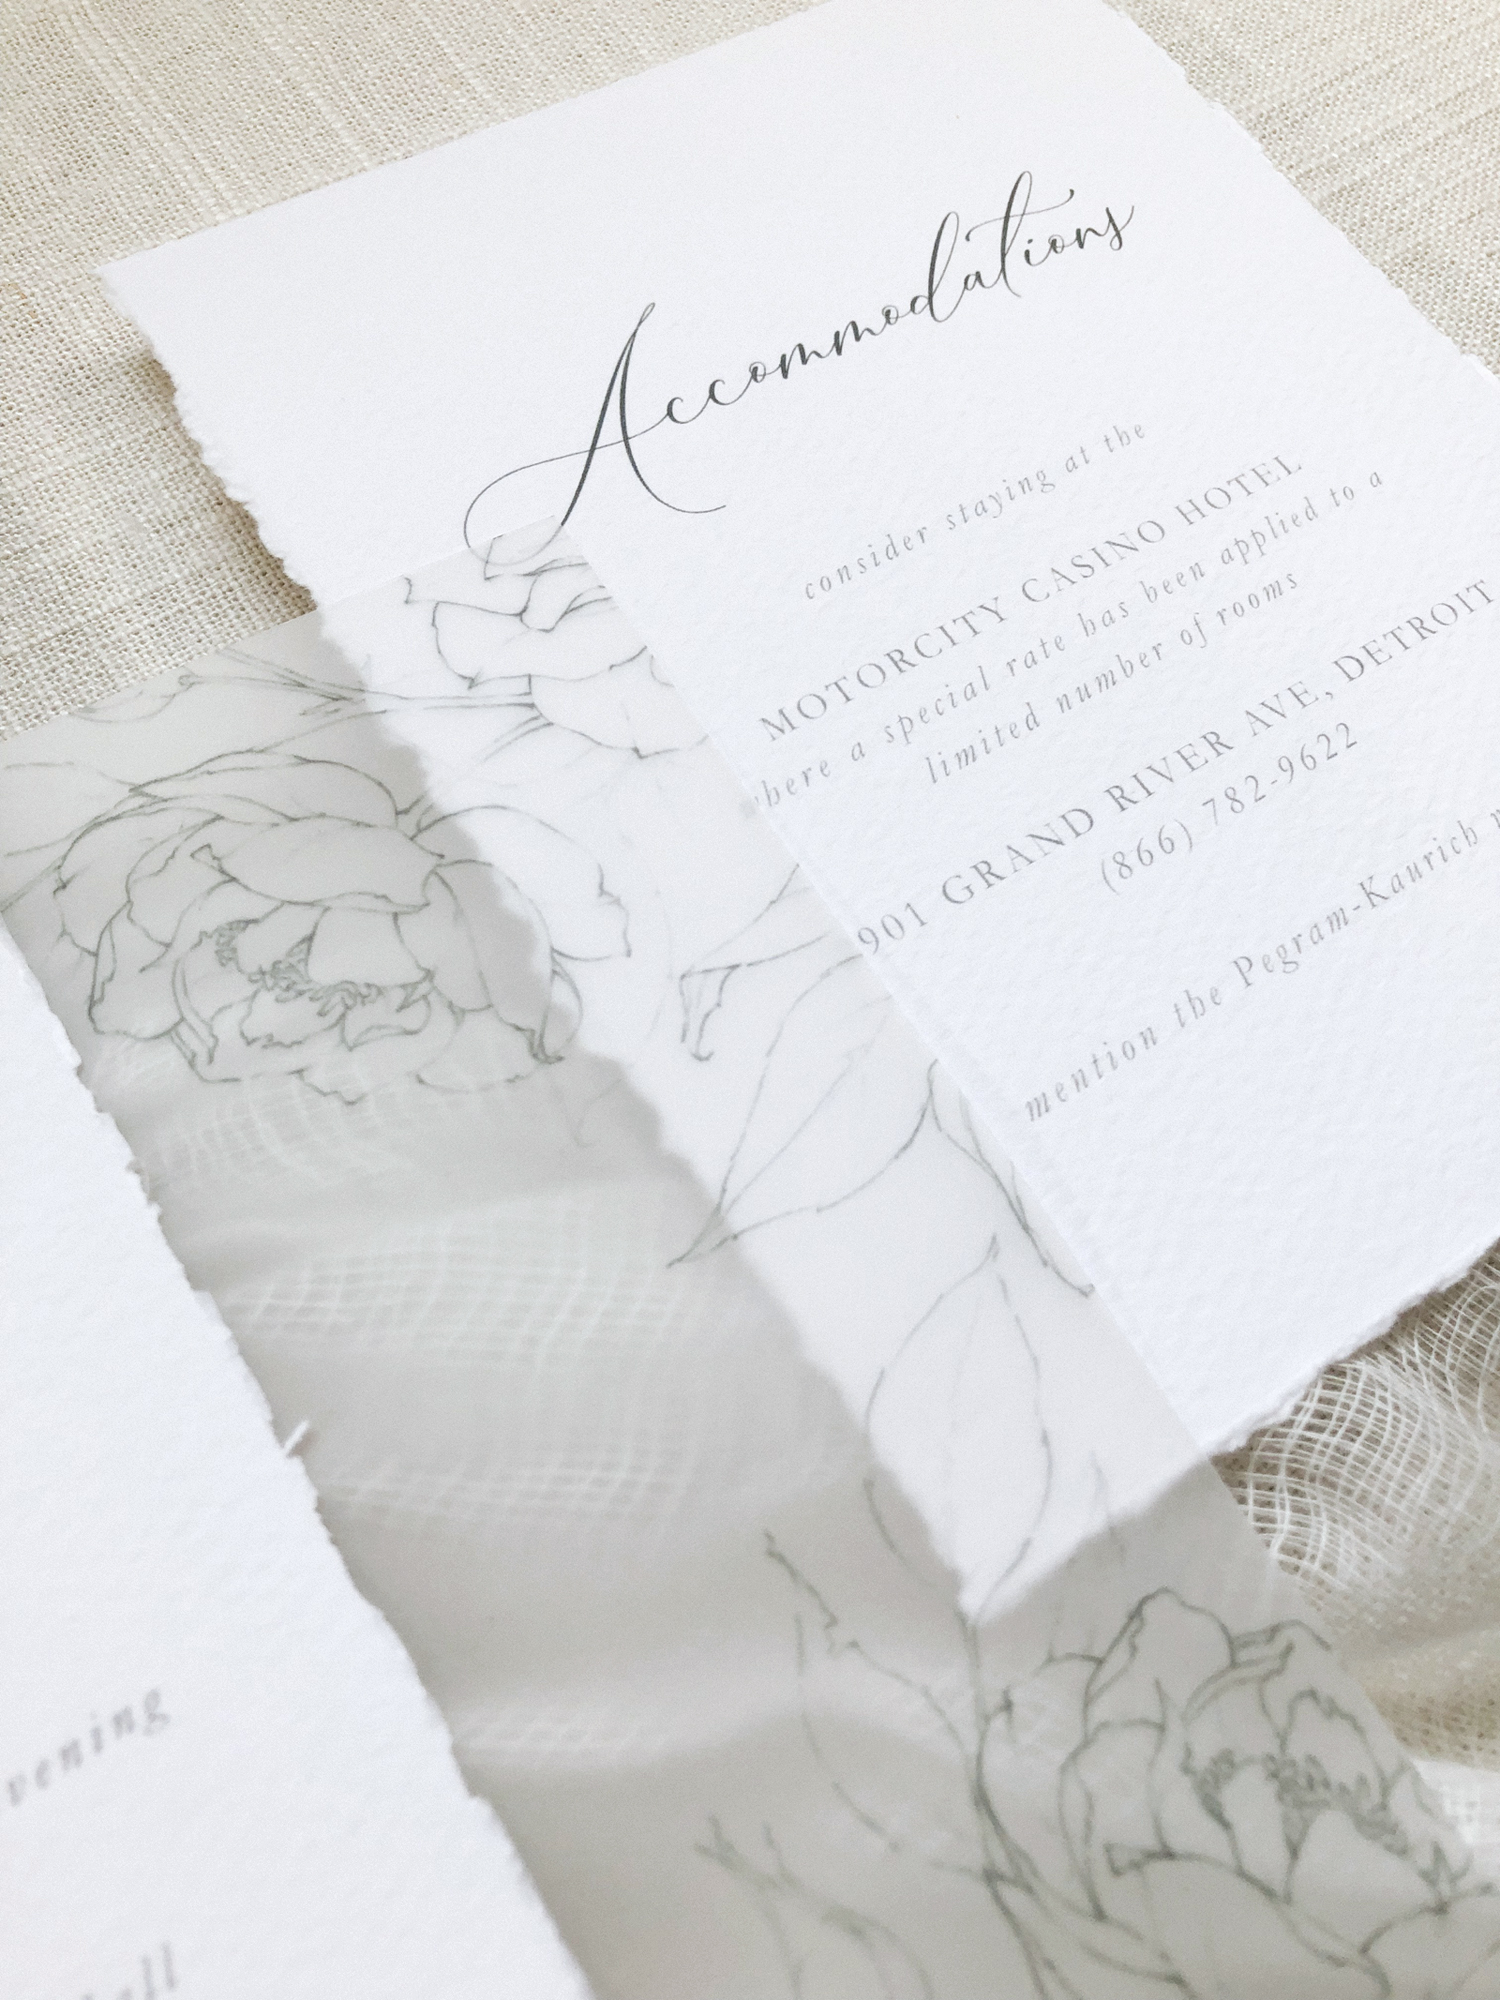 Vellum overlays or bellyband are a great way to customize and add personality to your wedding invitations! Find details about vellum wedding invitaitons along with other great ideas about how to add personality to your wedding invitations in this blog post! #weddinginvitations #vellumweddinginvitations #whimsicalwedding #modernwedding #fineartwedding